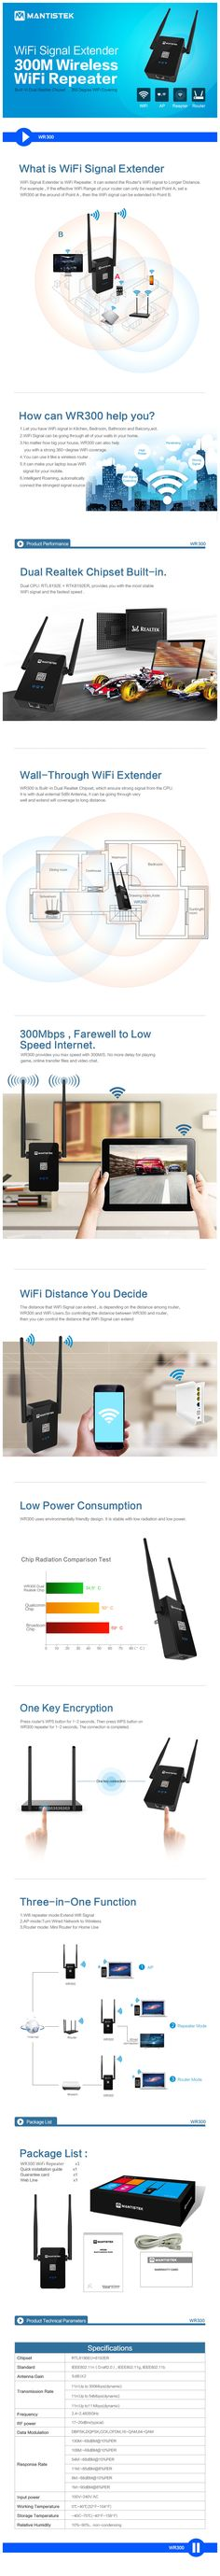 MantisTek™ WR300 300Mbps dual 5dBi Wireless WiFi Repeater Network Router Extender Sale - Banggood.com